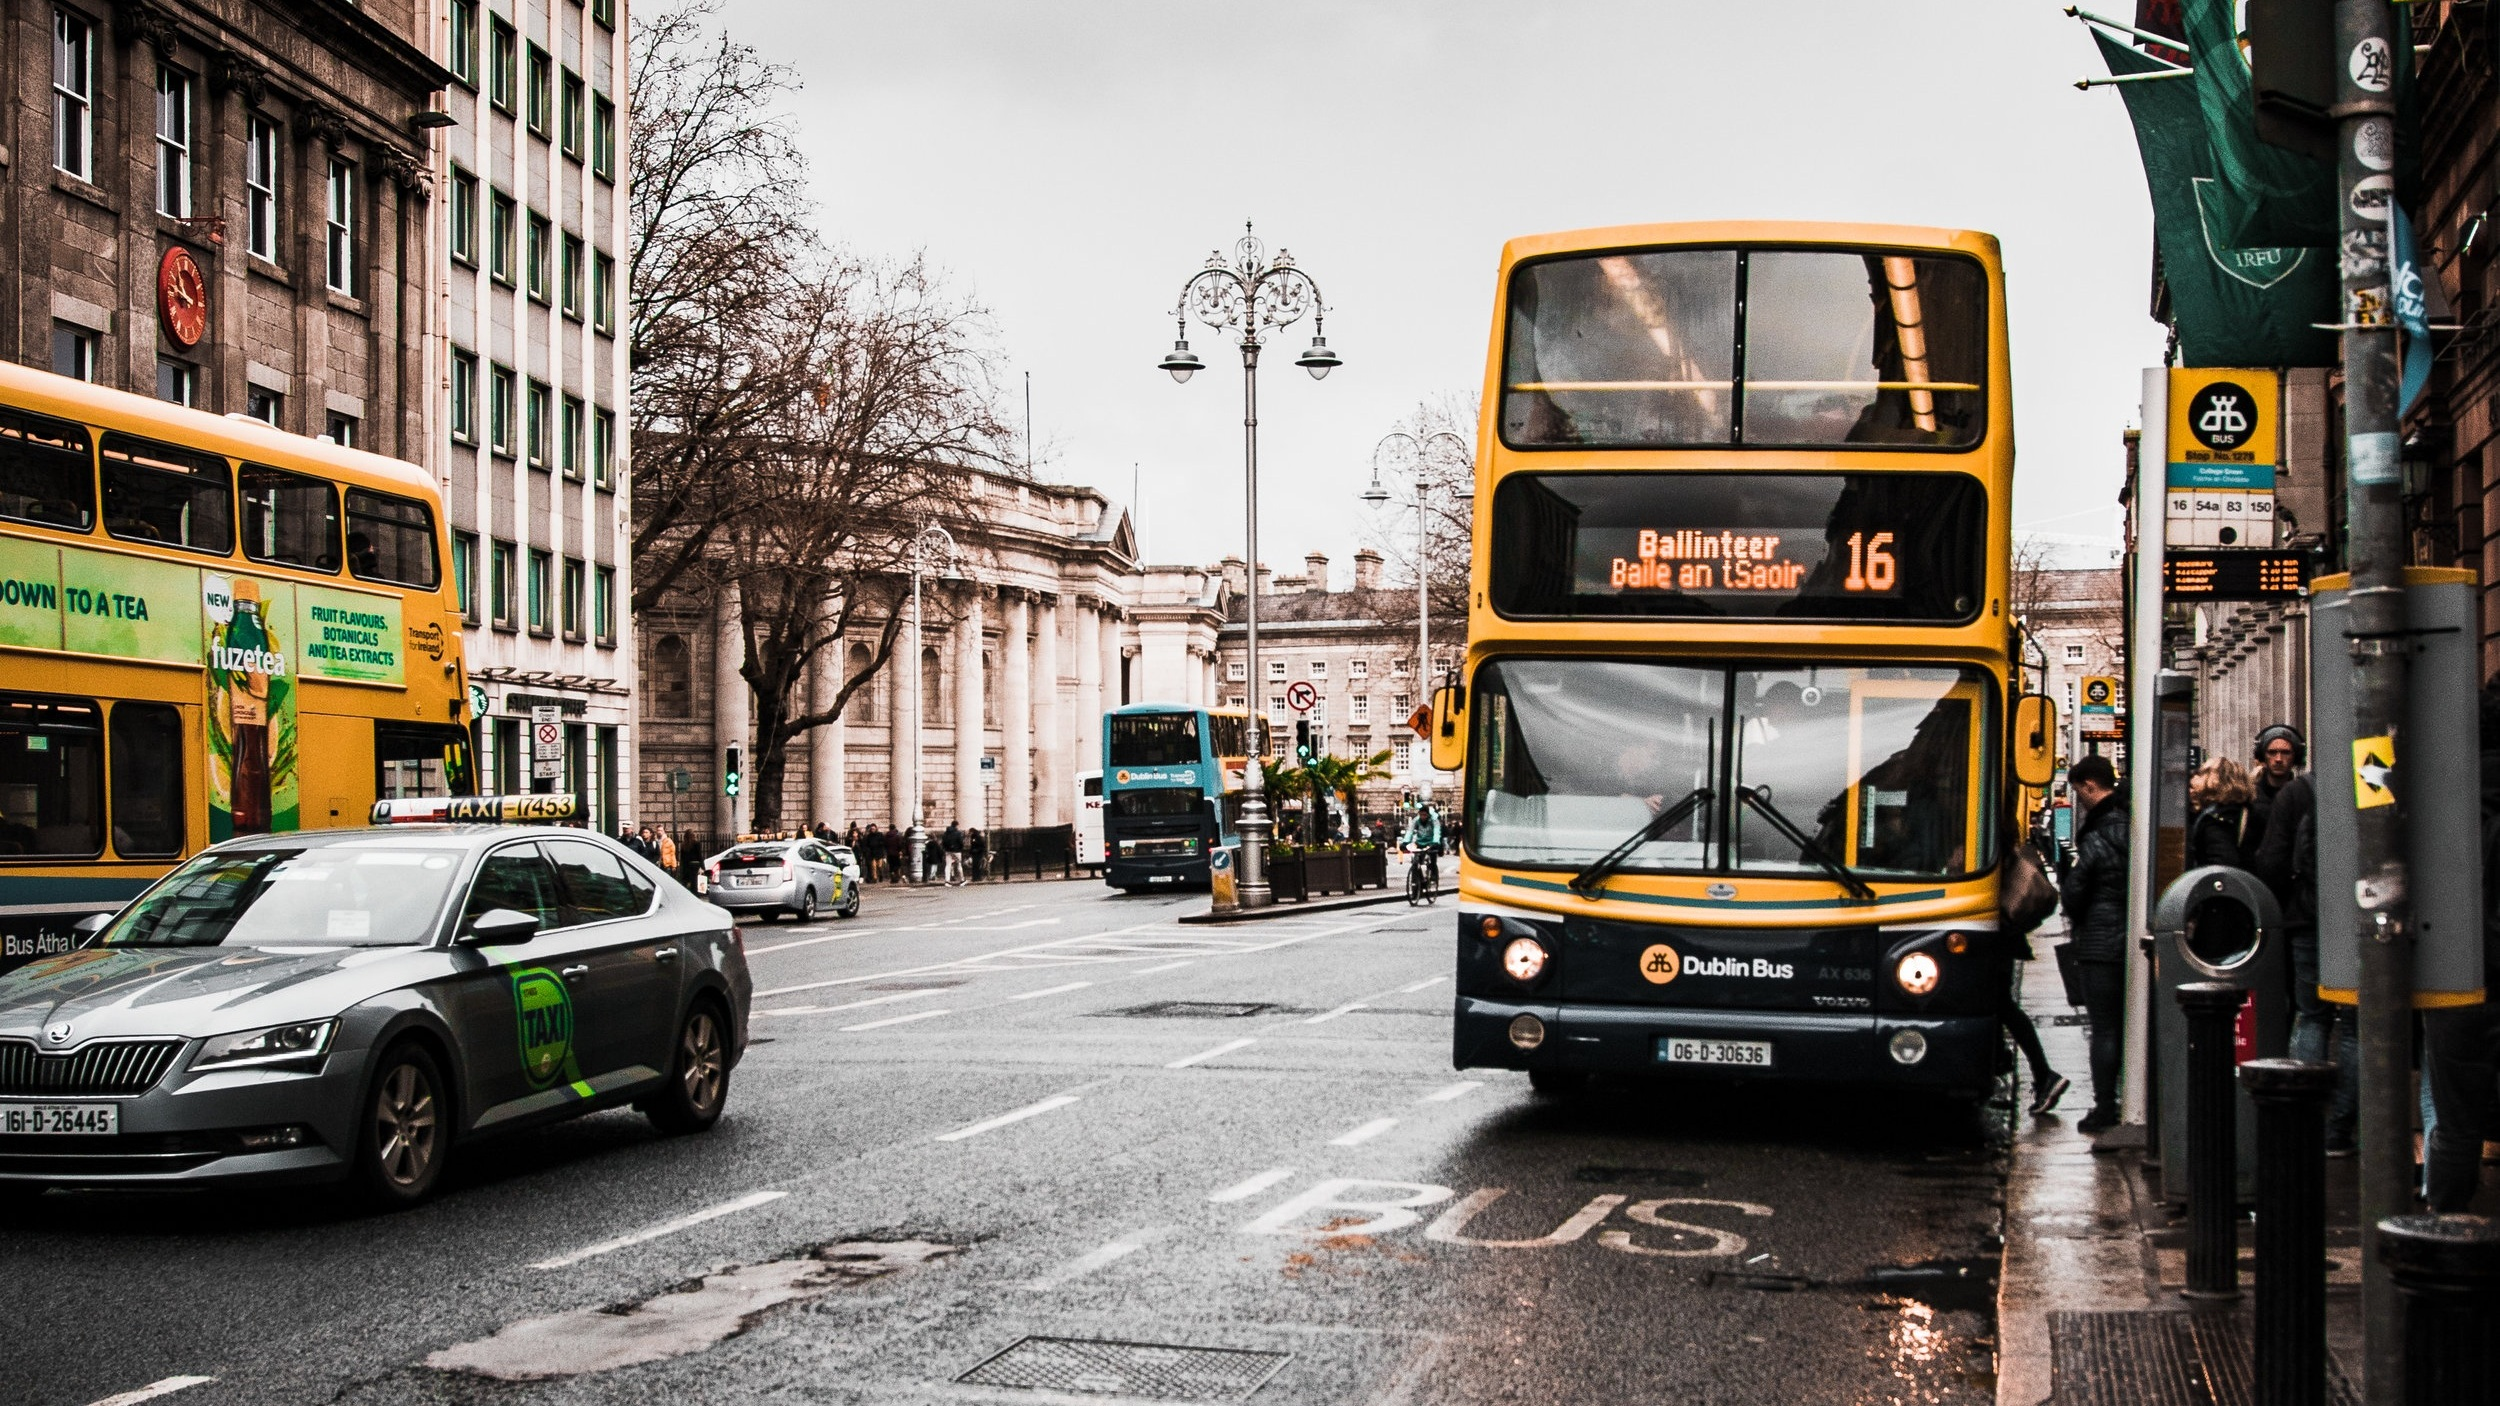 Dublin bus - image accompanying an article about free travel for homeless people in Dublin